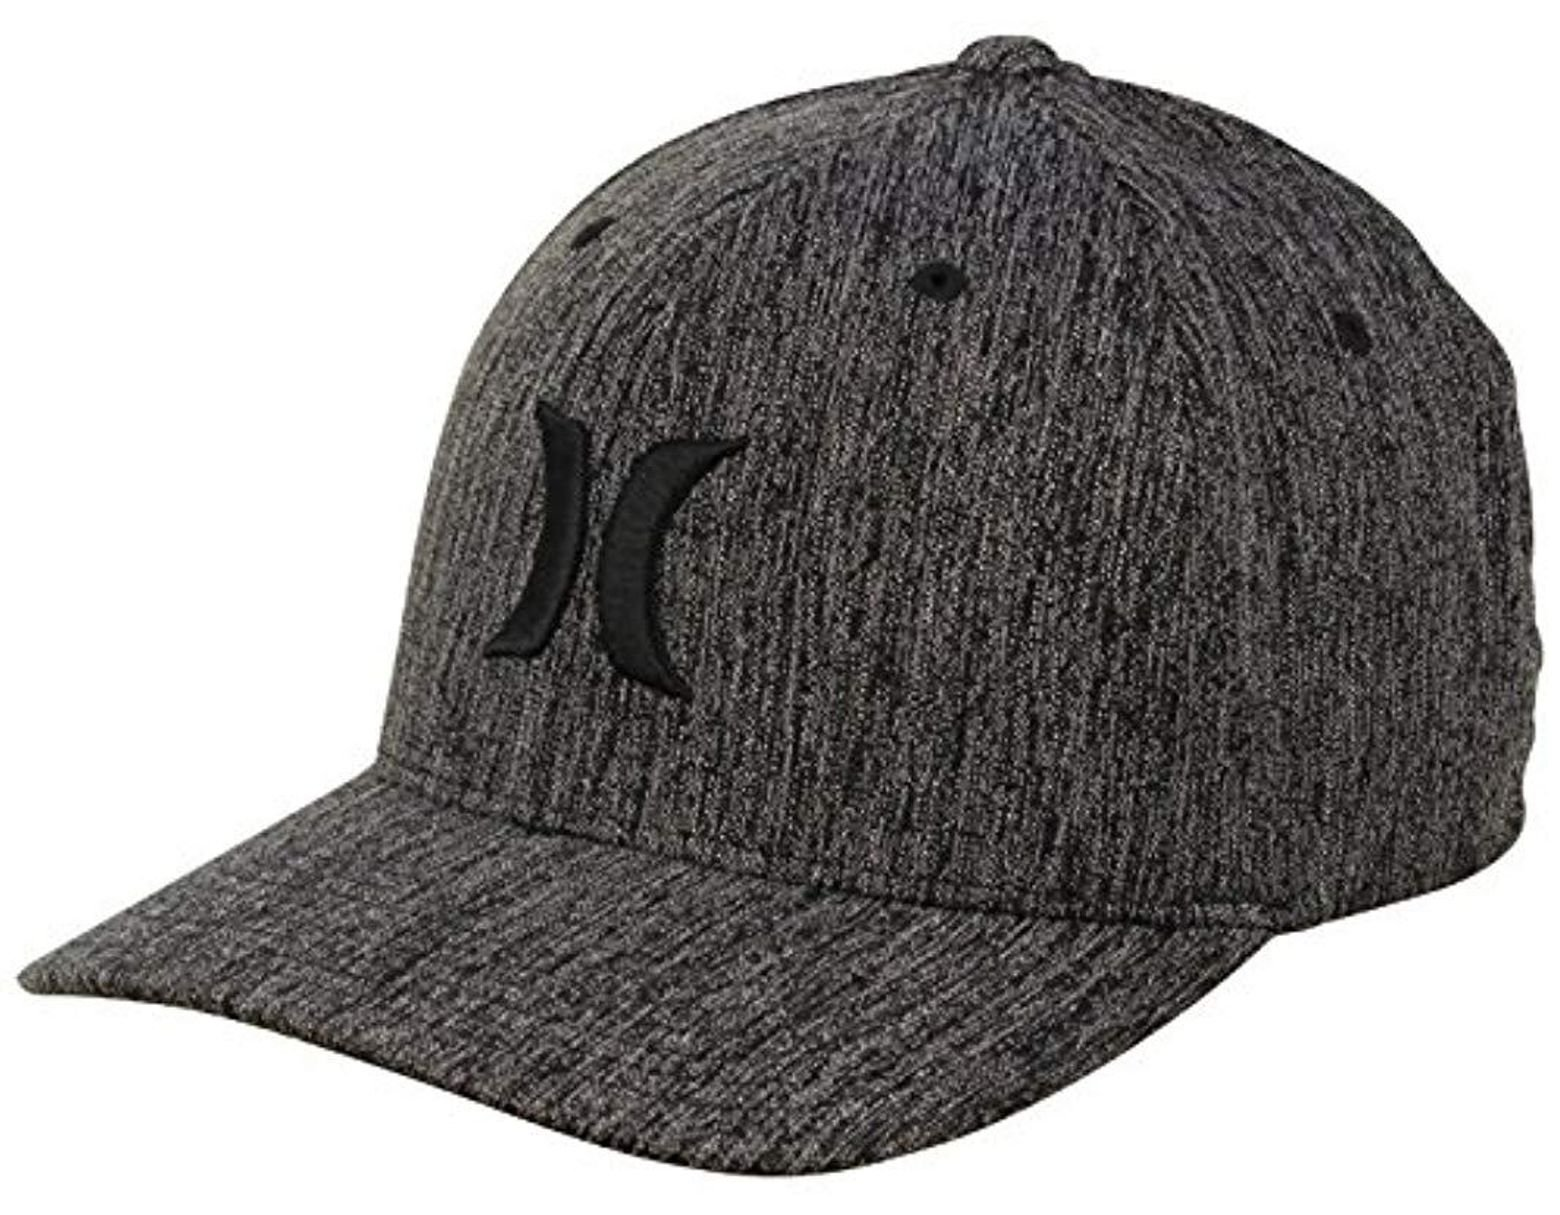 brand new cce0f 695f2 Hurley. Men s Black Textures Baseball Cap